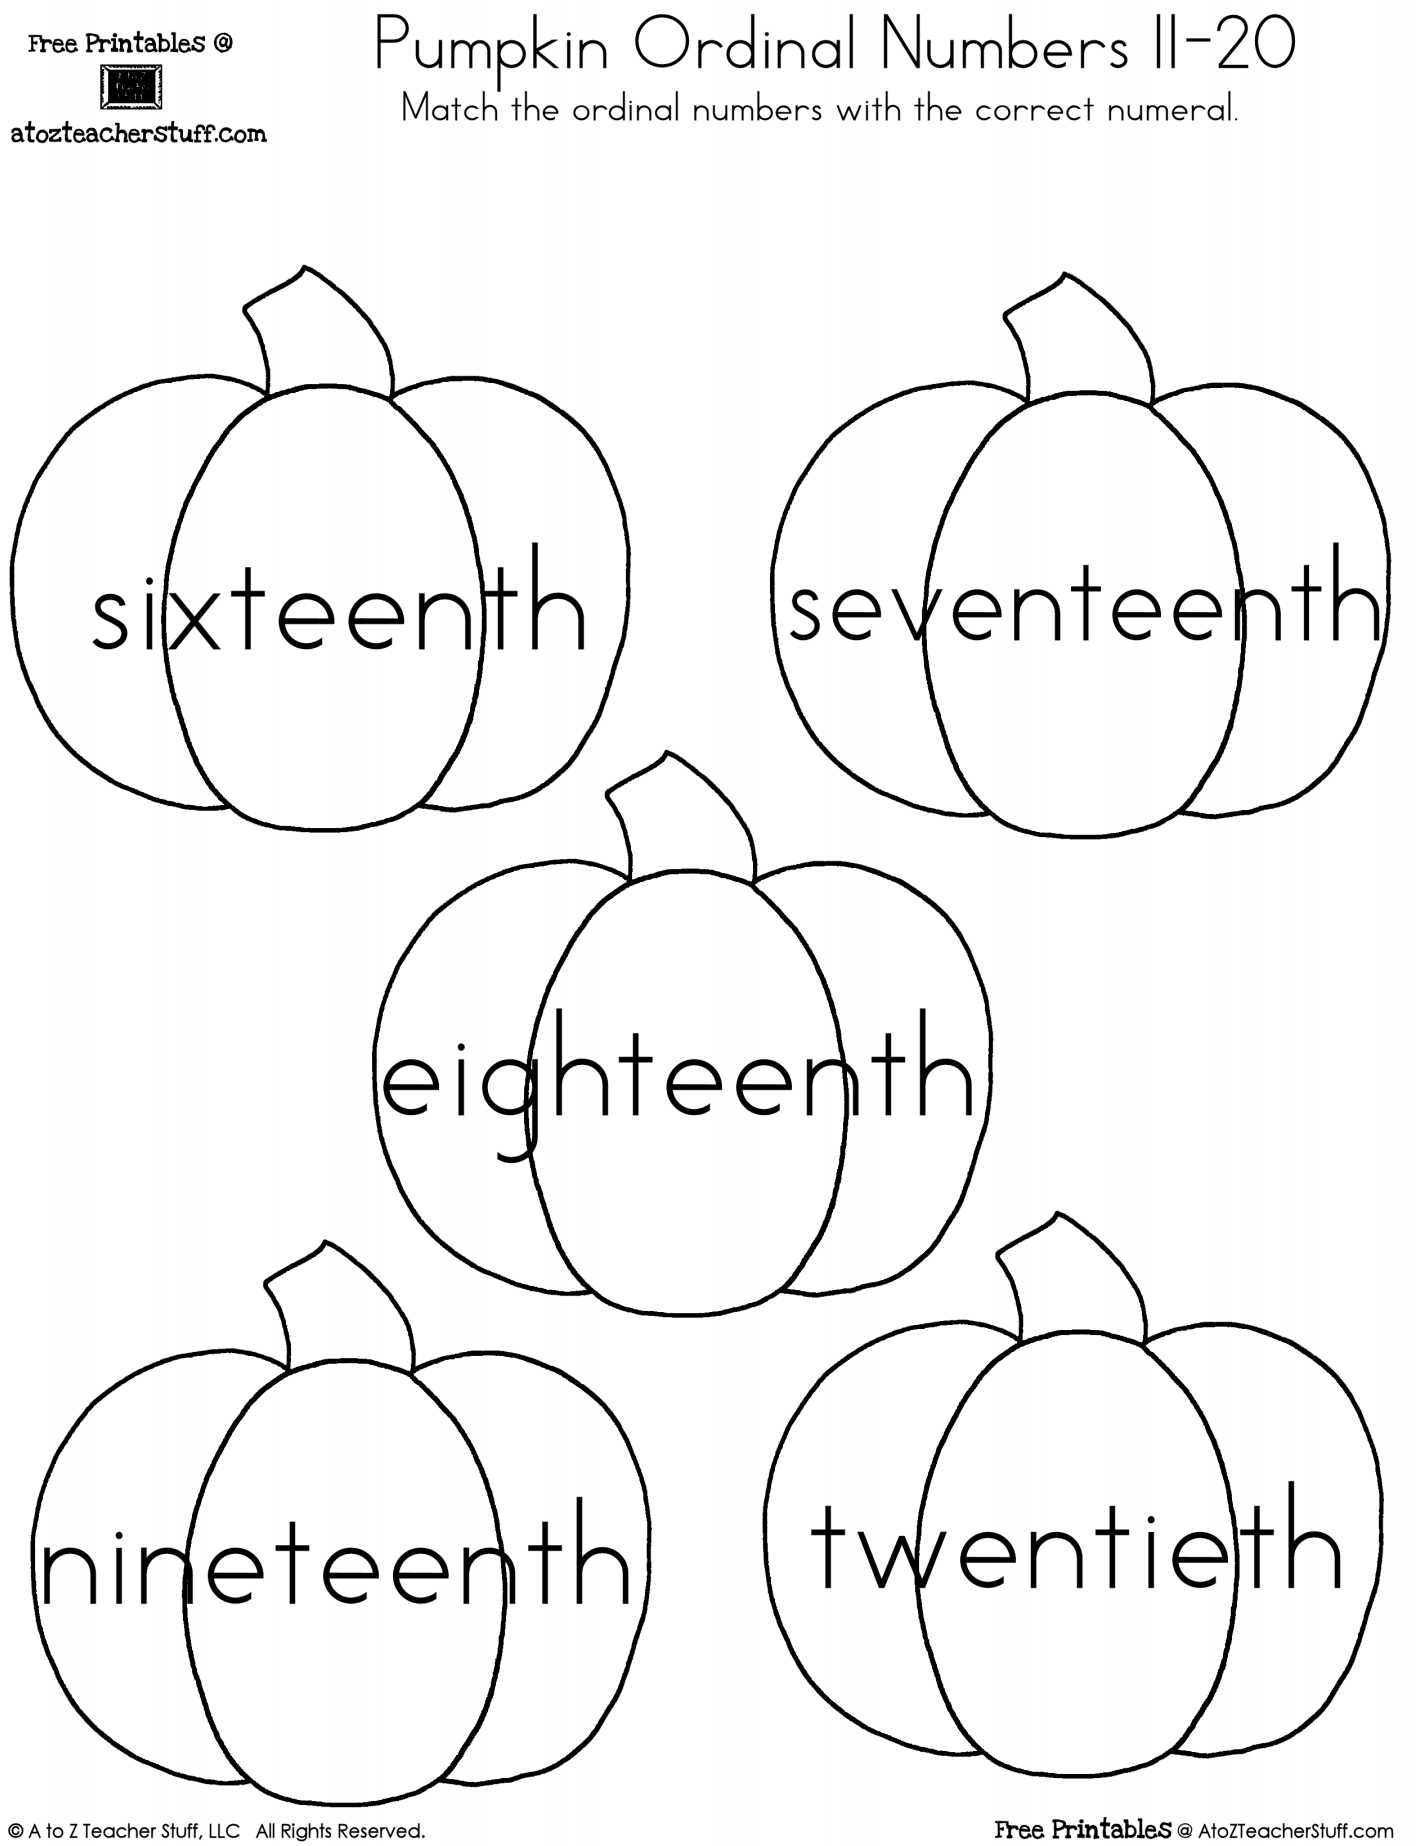 worksheet Worksheet Numbers 1 20 pumpkin ordinal numbers 1 20 a to z teacher stuff printable pages teens